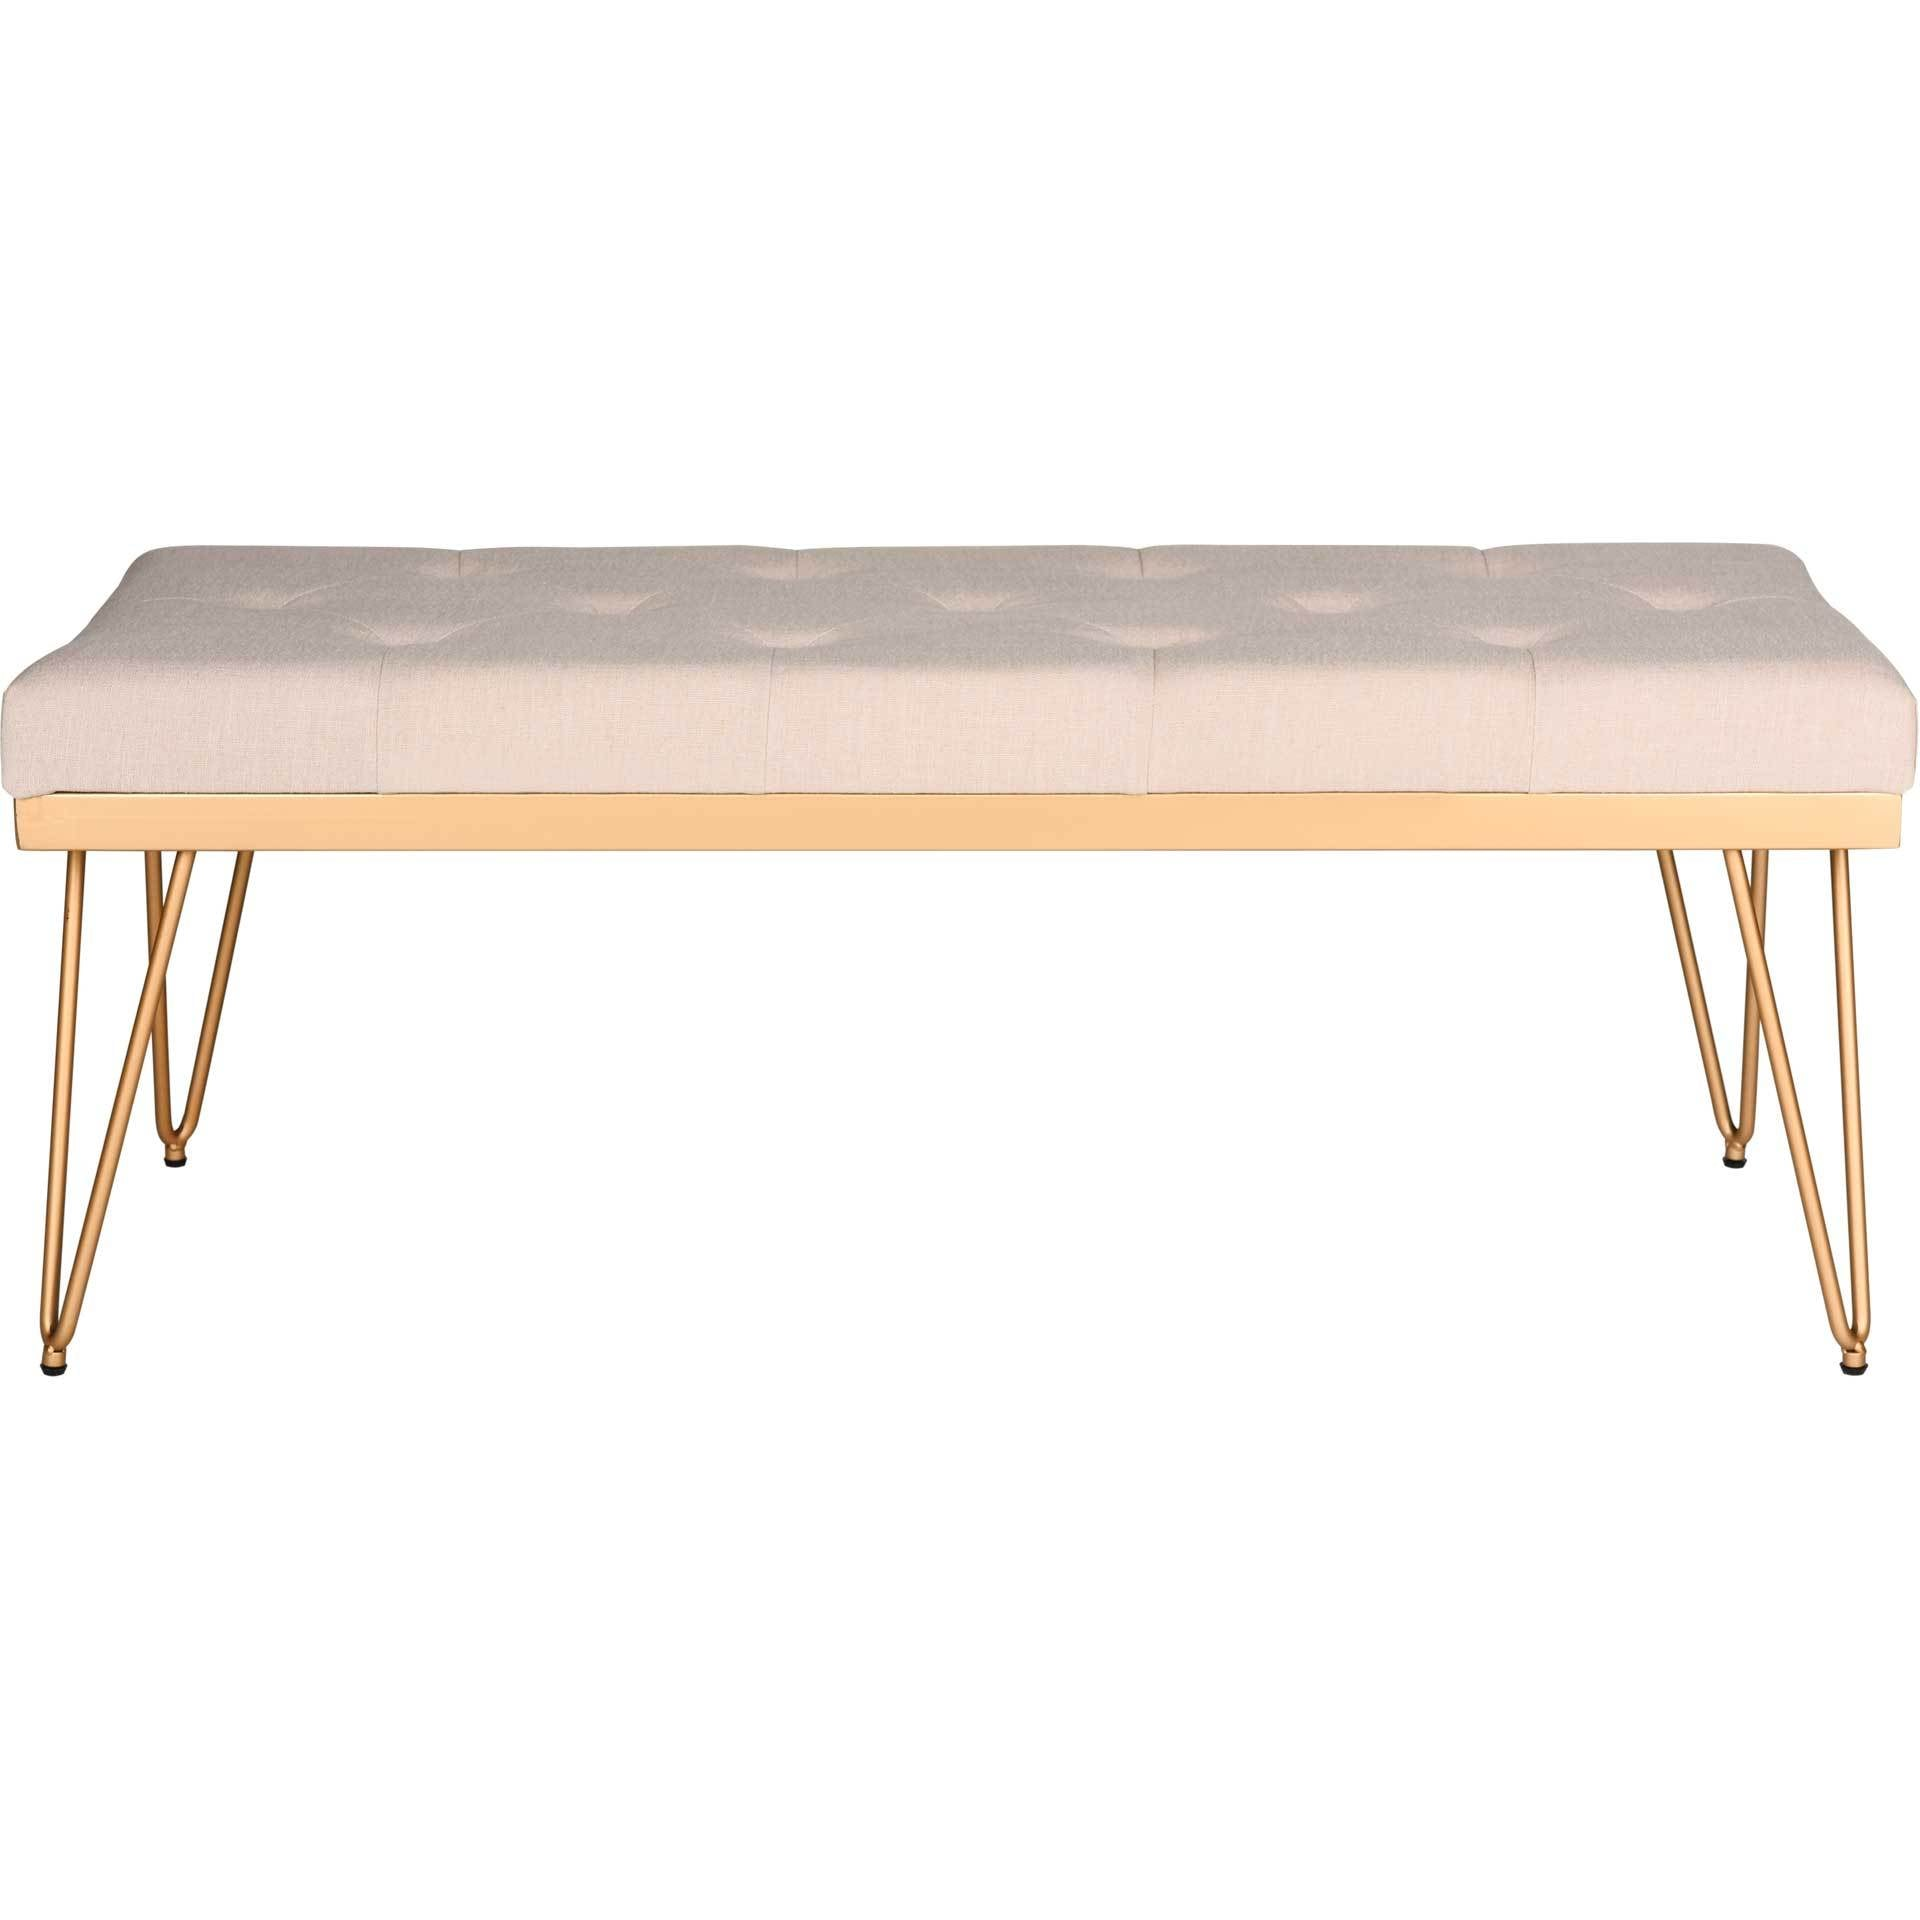 Maxim Bench Beige/Gold